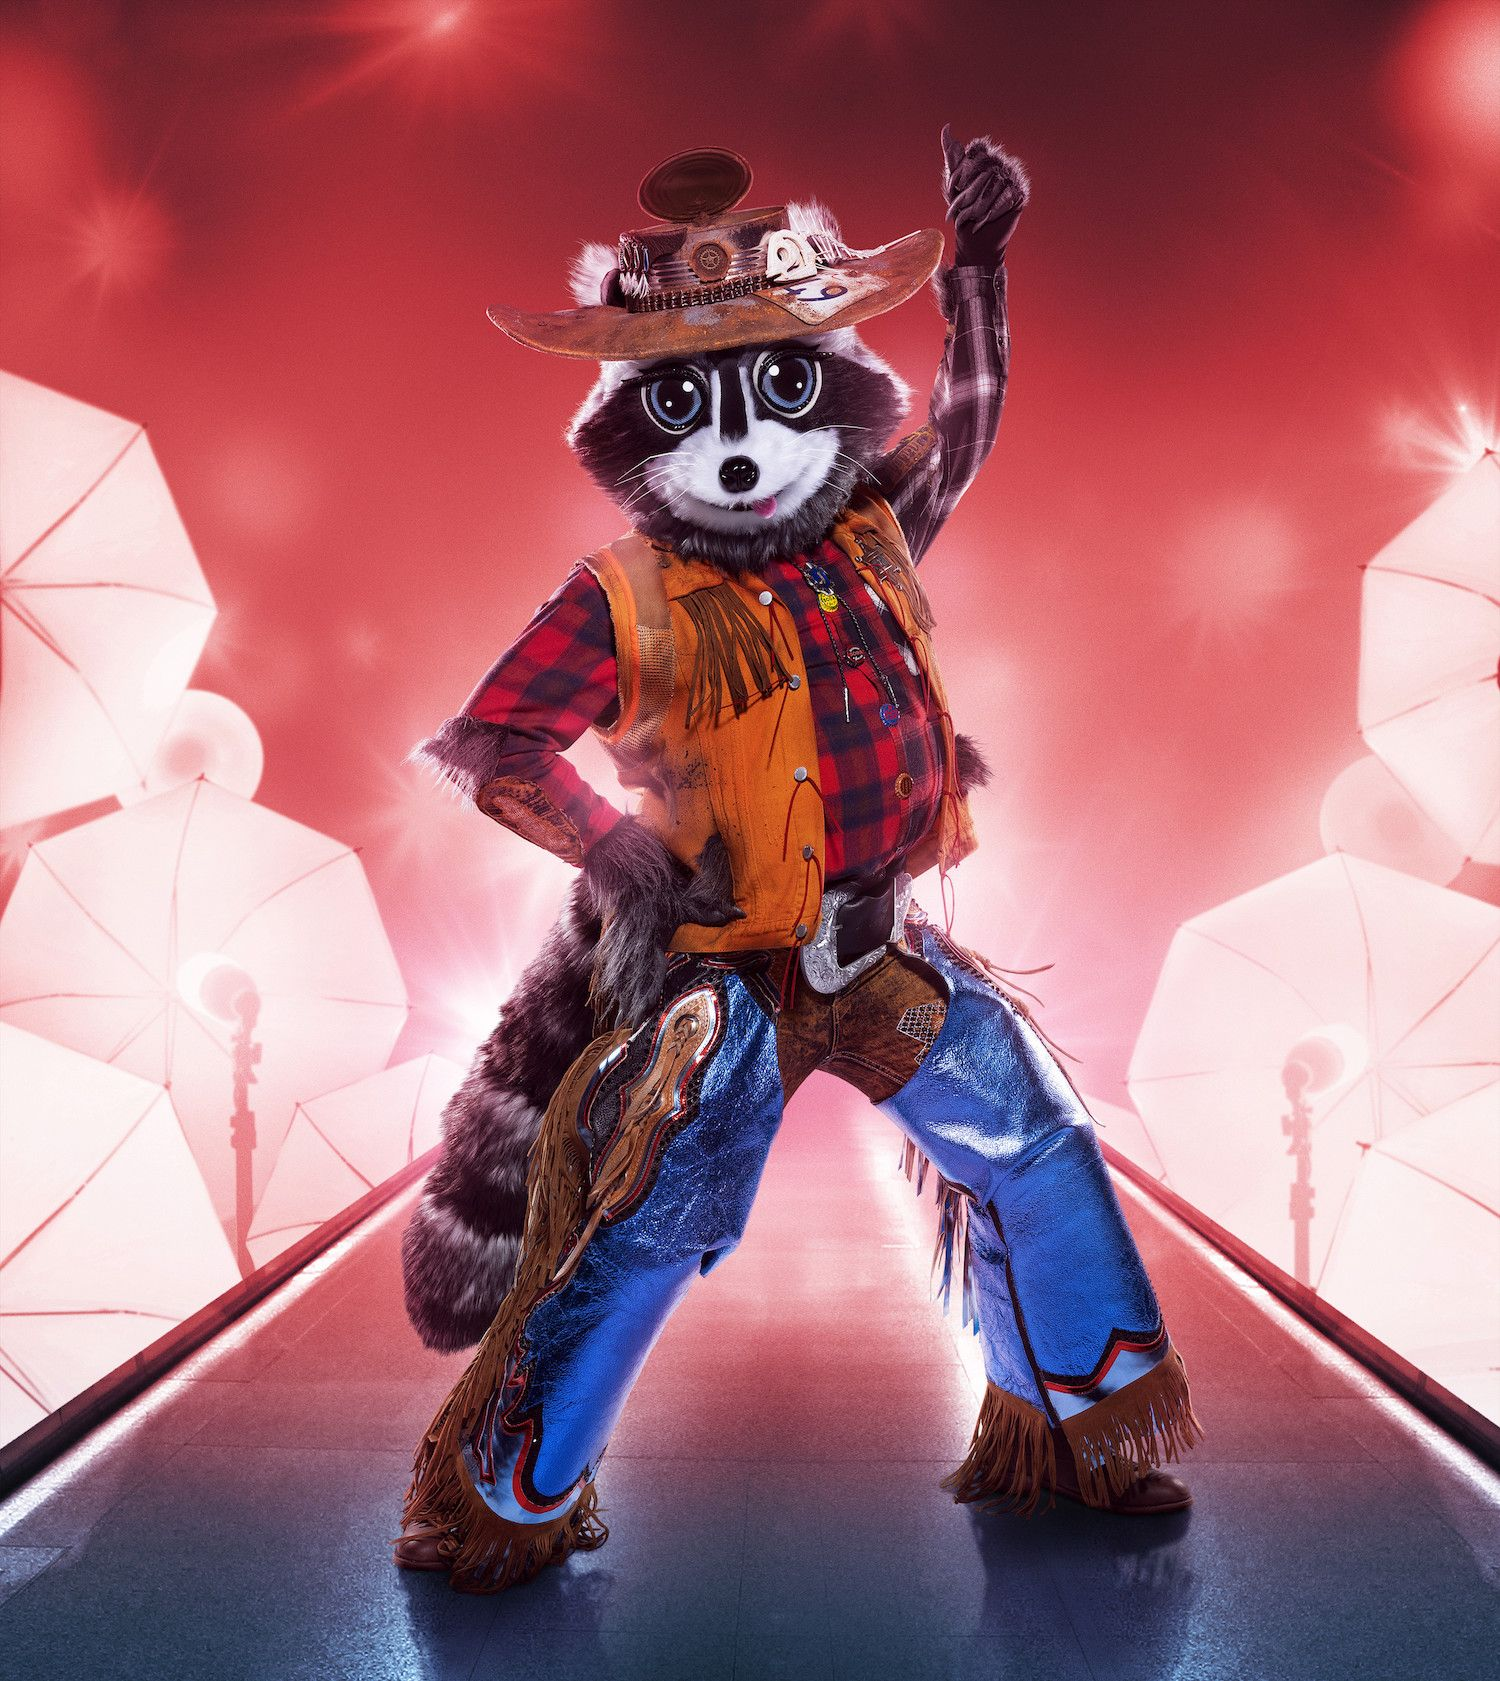 Our editors independently research, test, and recommend the be. The Masked Singer Cast Of Season 5 In 2021 Who Are The Contestants On The Masked Singer